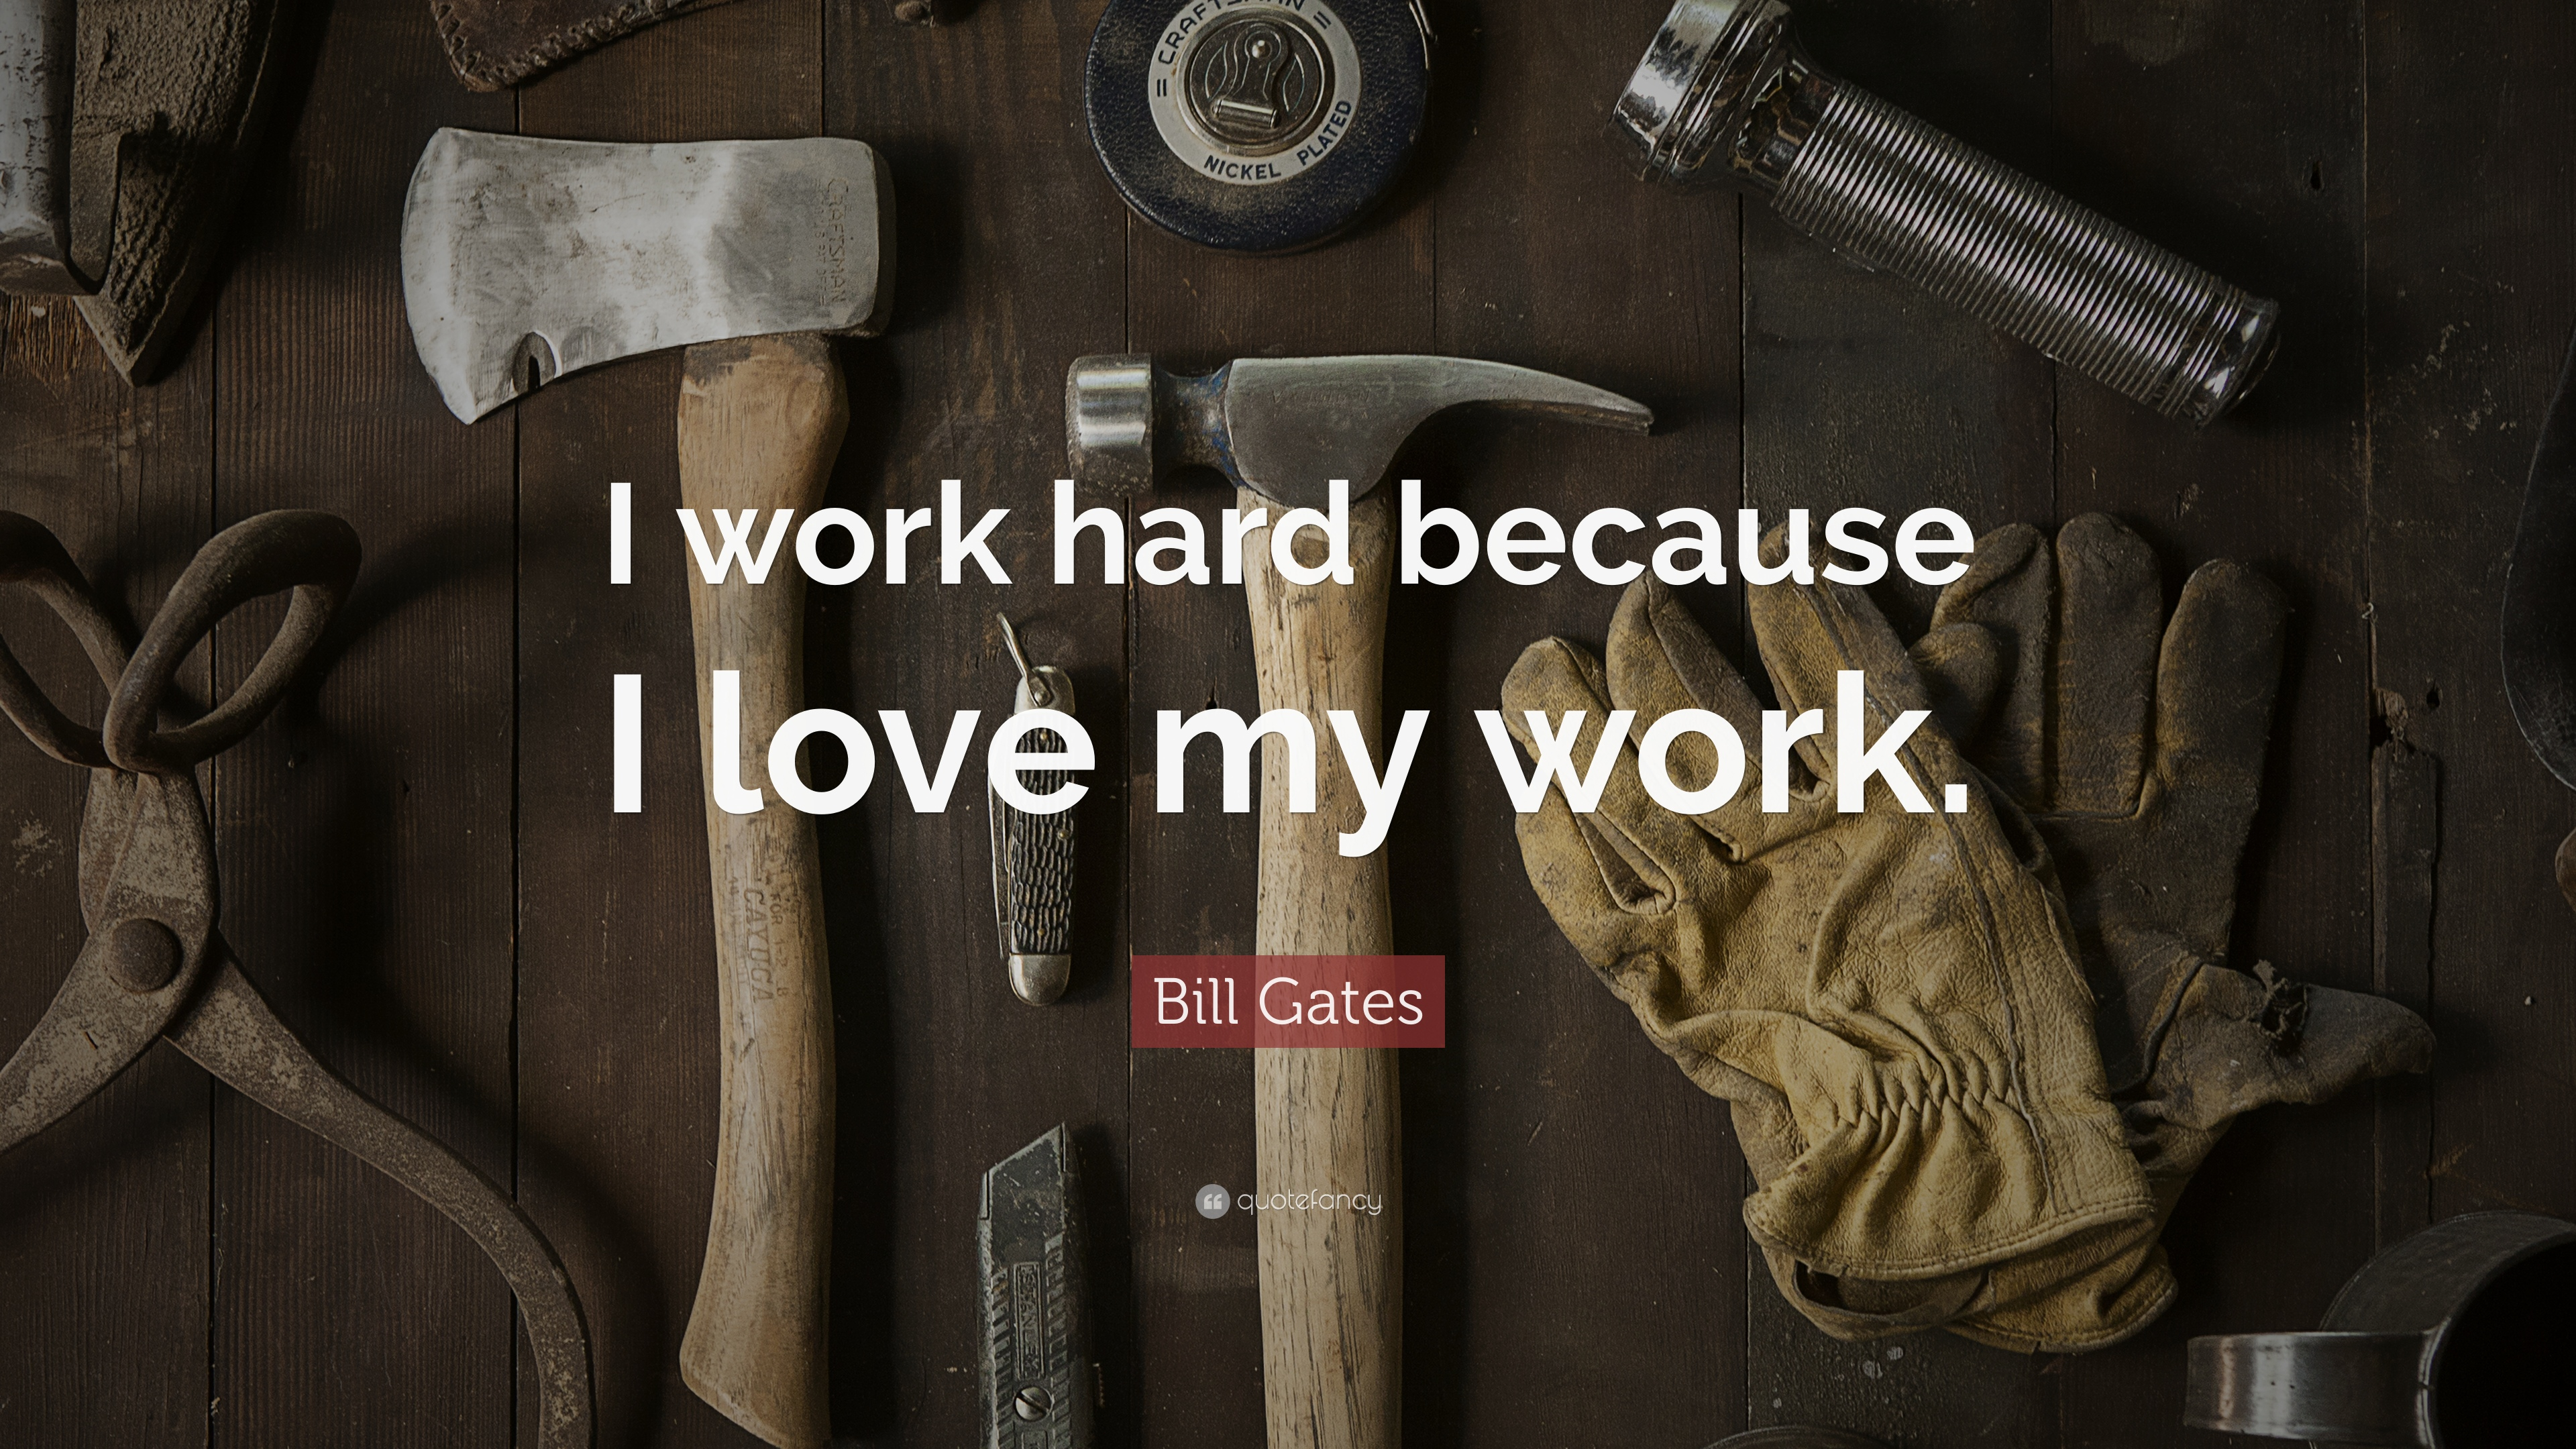 Hard work quotes 40 wallpapers quotefancy hard work quotes i work hard because i love my work altavistaventures Gallery